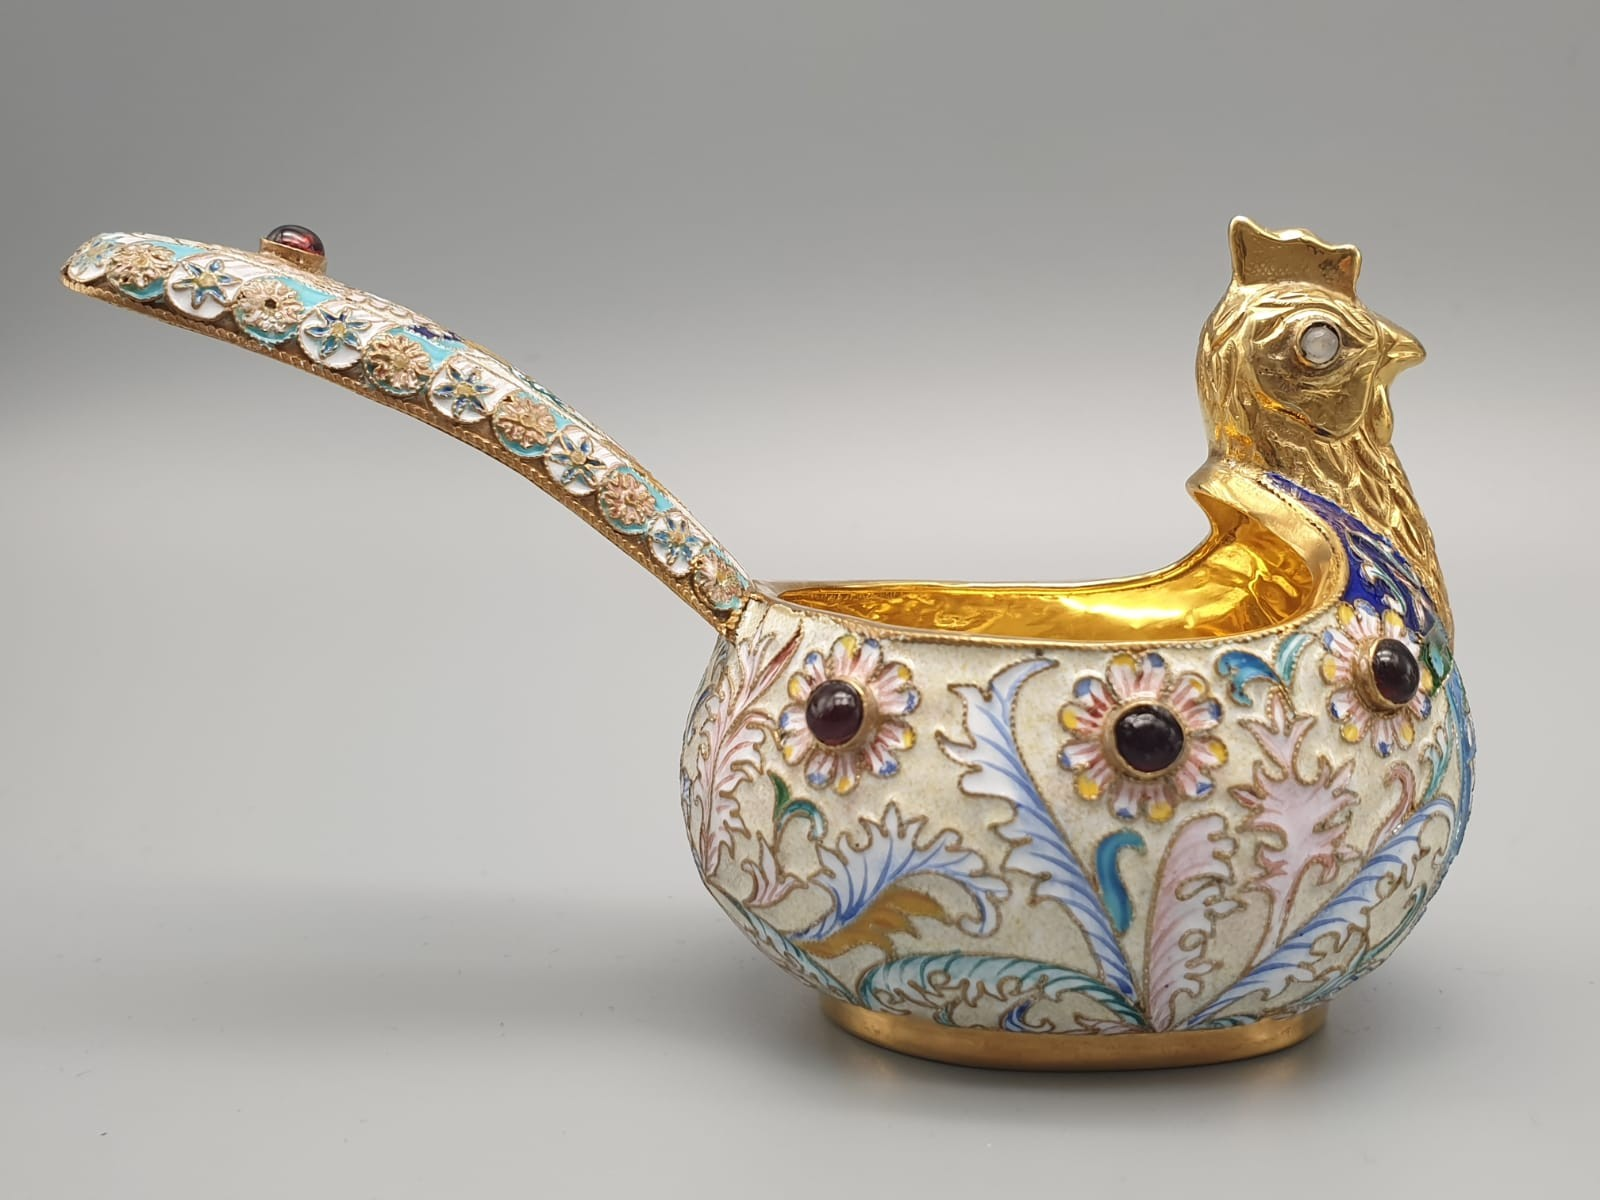 Pair of Russian 20th century silver enamel gemset kavosch bowl in the form of birds, an exquisite - Image 12 of 29